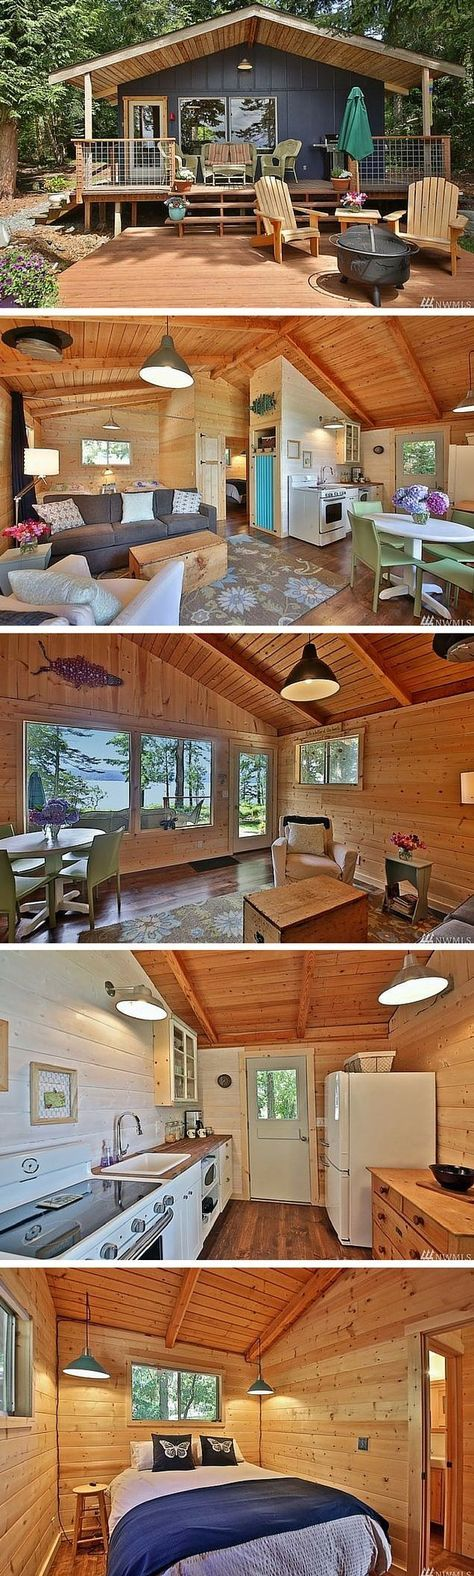 Awesome A 528 Sq Ft Cabin In Langley Washington By Http Www Top10 Home Decor Pics Xyz Tiny Homes